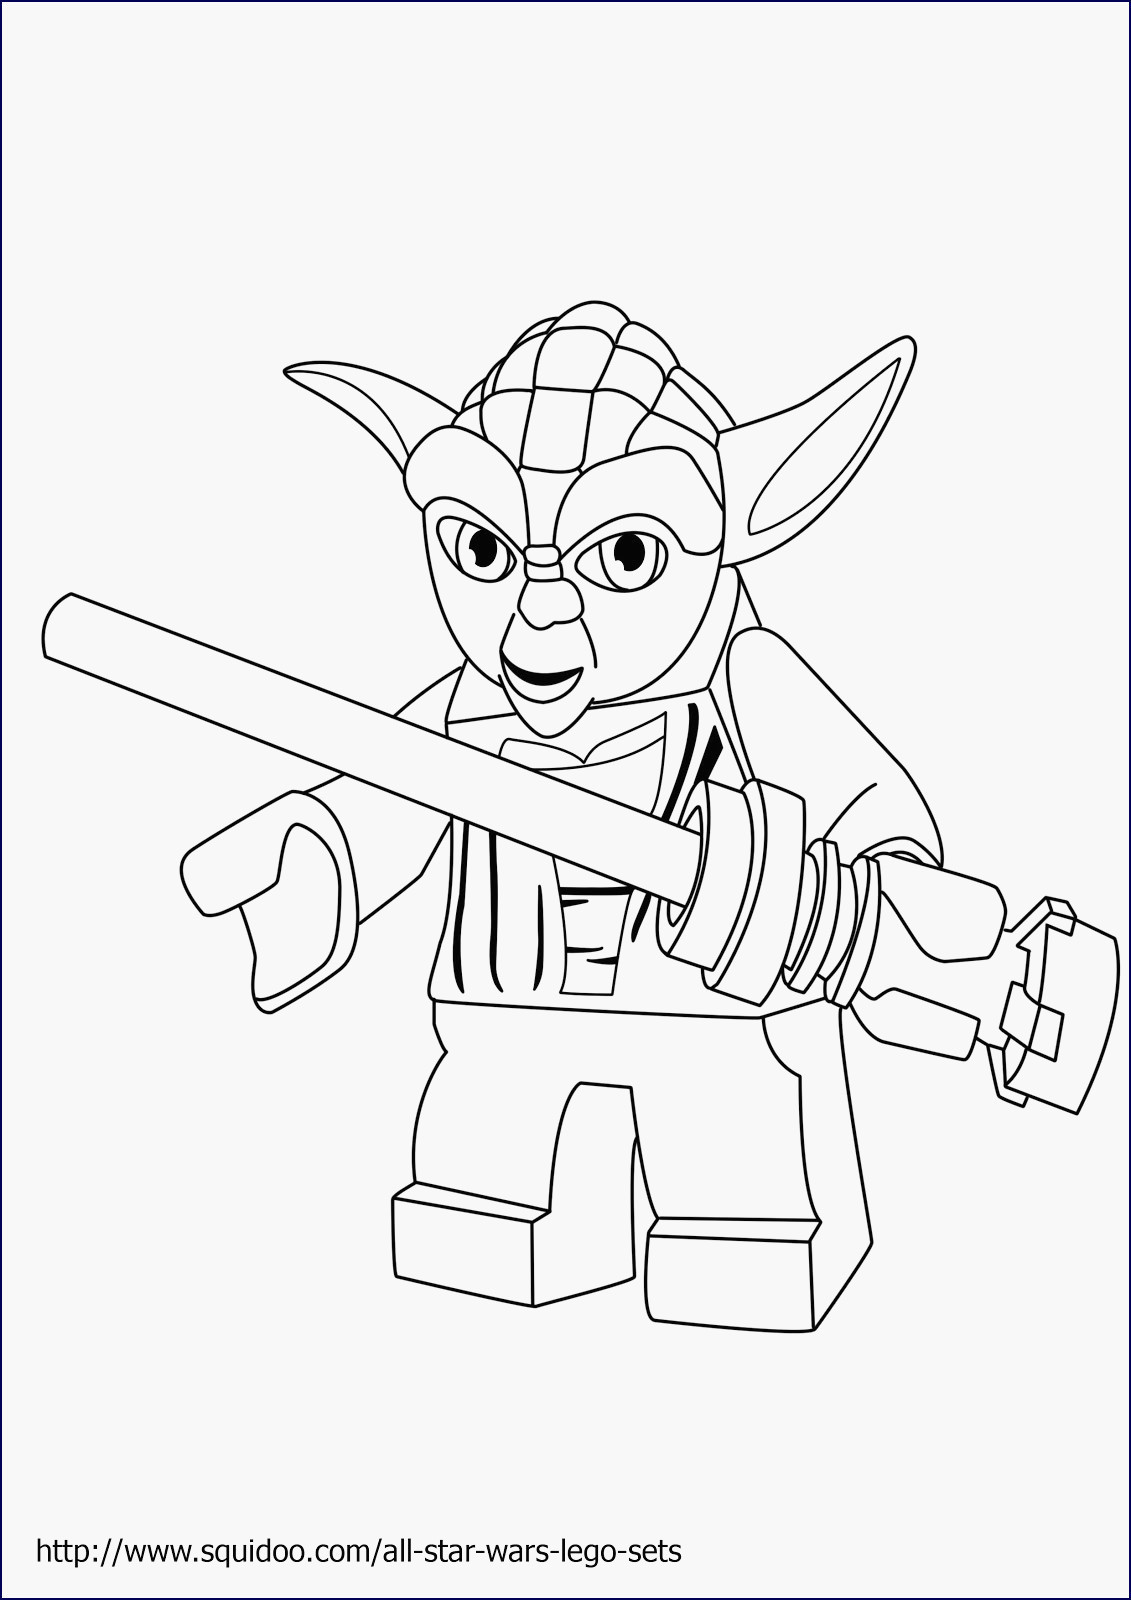 Lego Star Wars Malvorlagen Inspirierend Lego Star Wars 3 Coloring Pages Free Lego Christmas Coloring Pages Sammlung